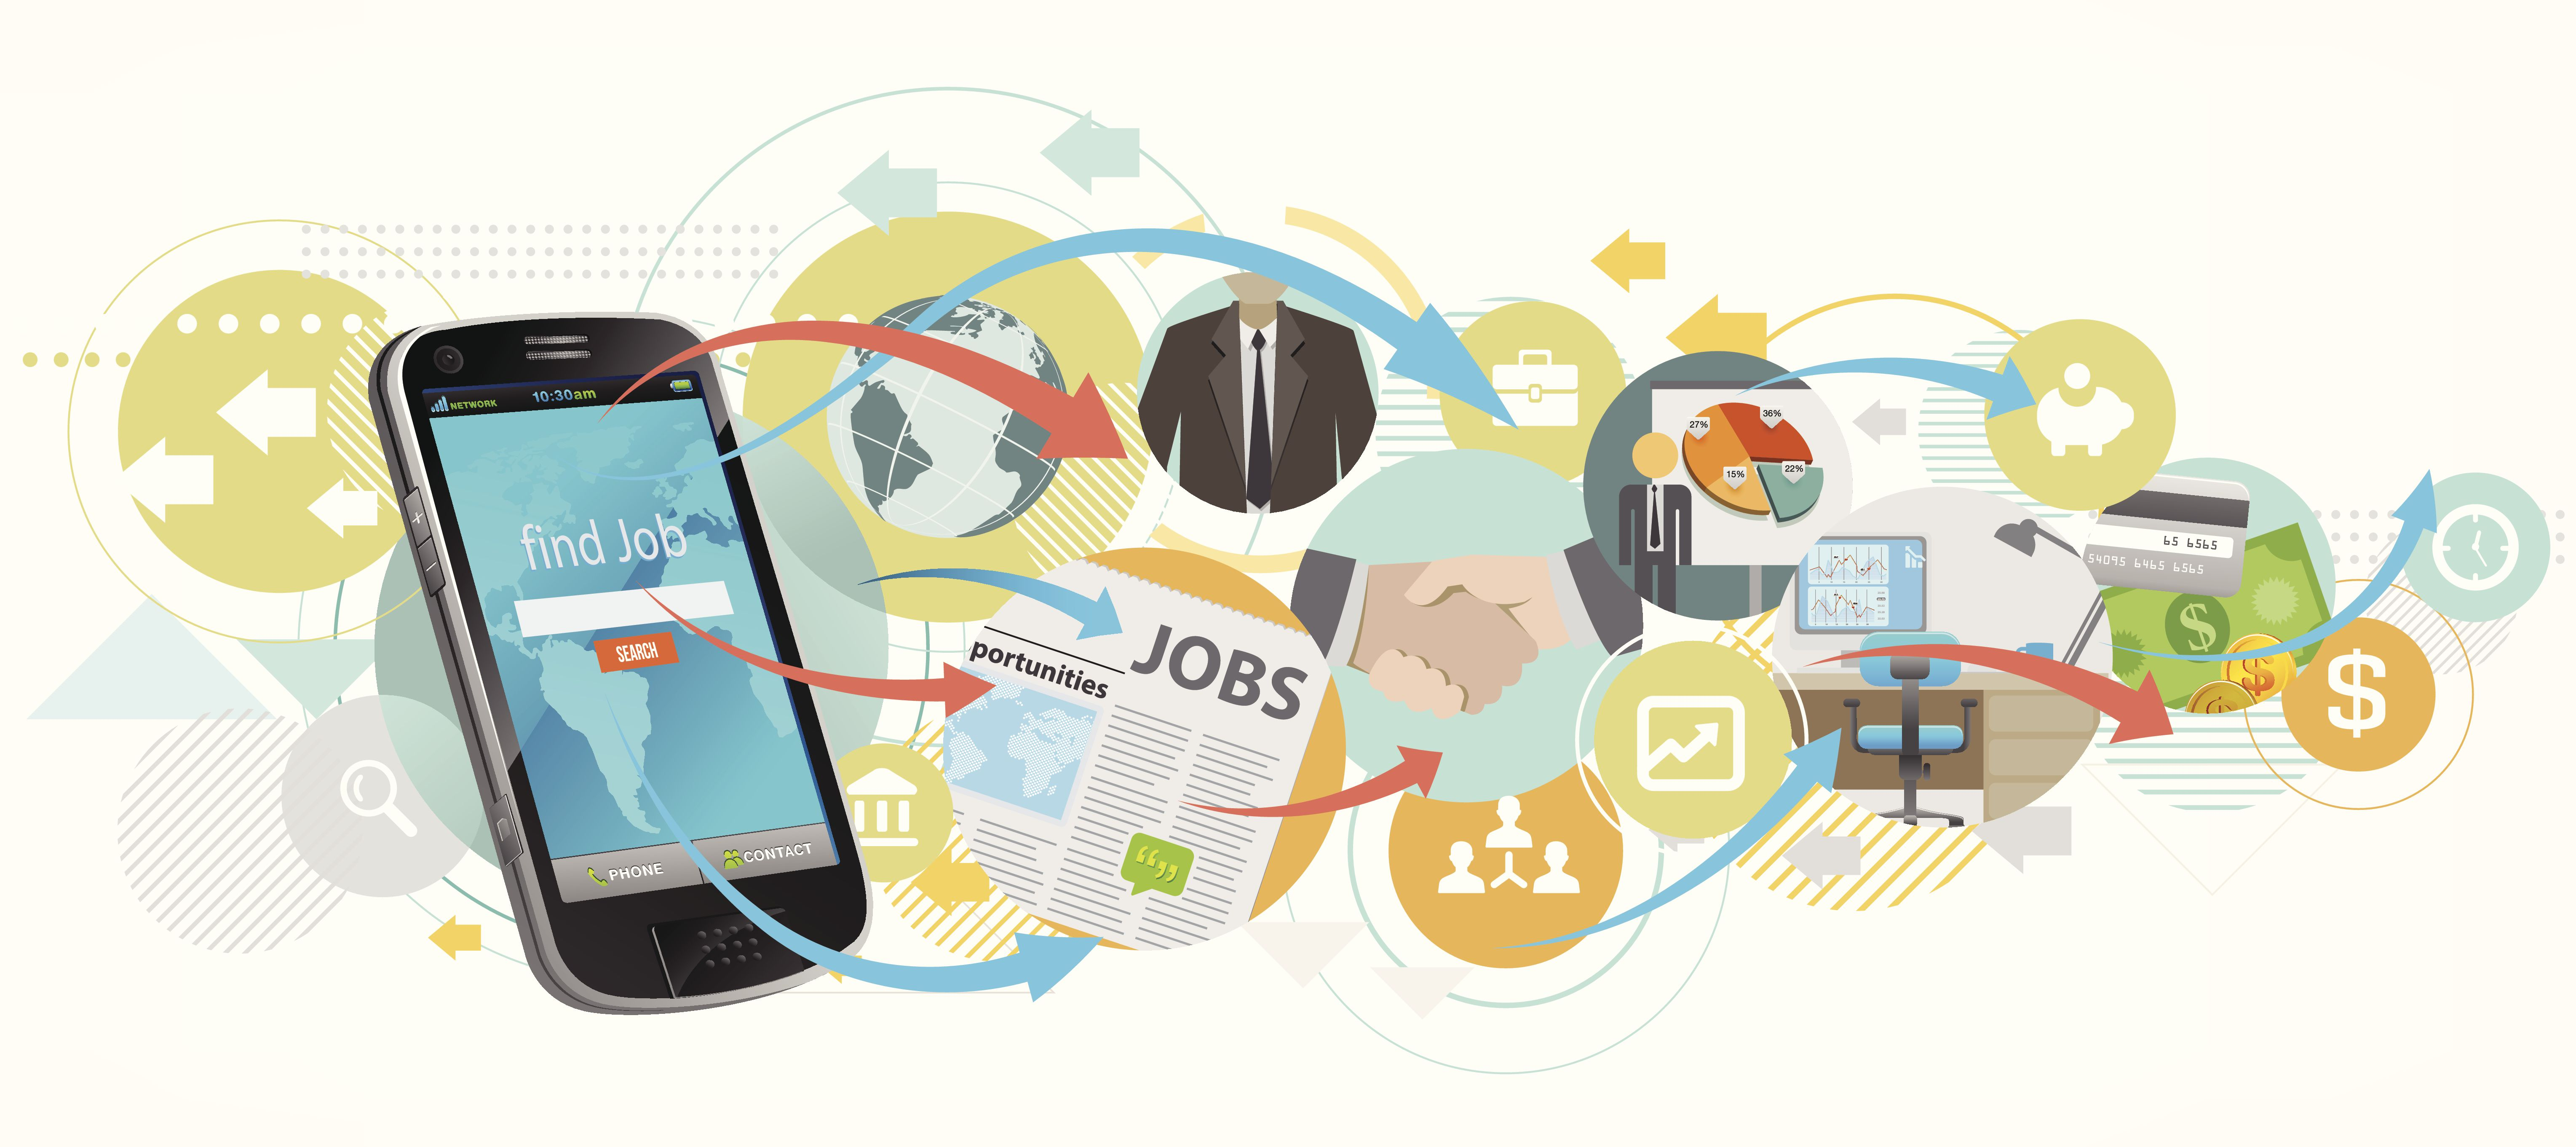 Search job by smartphone